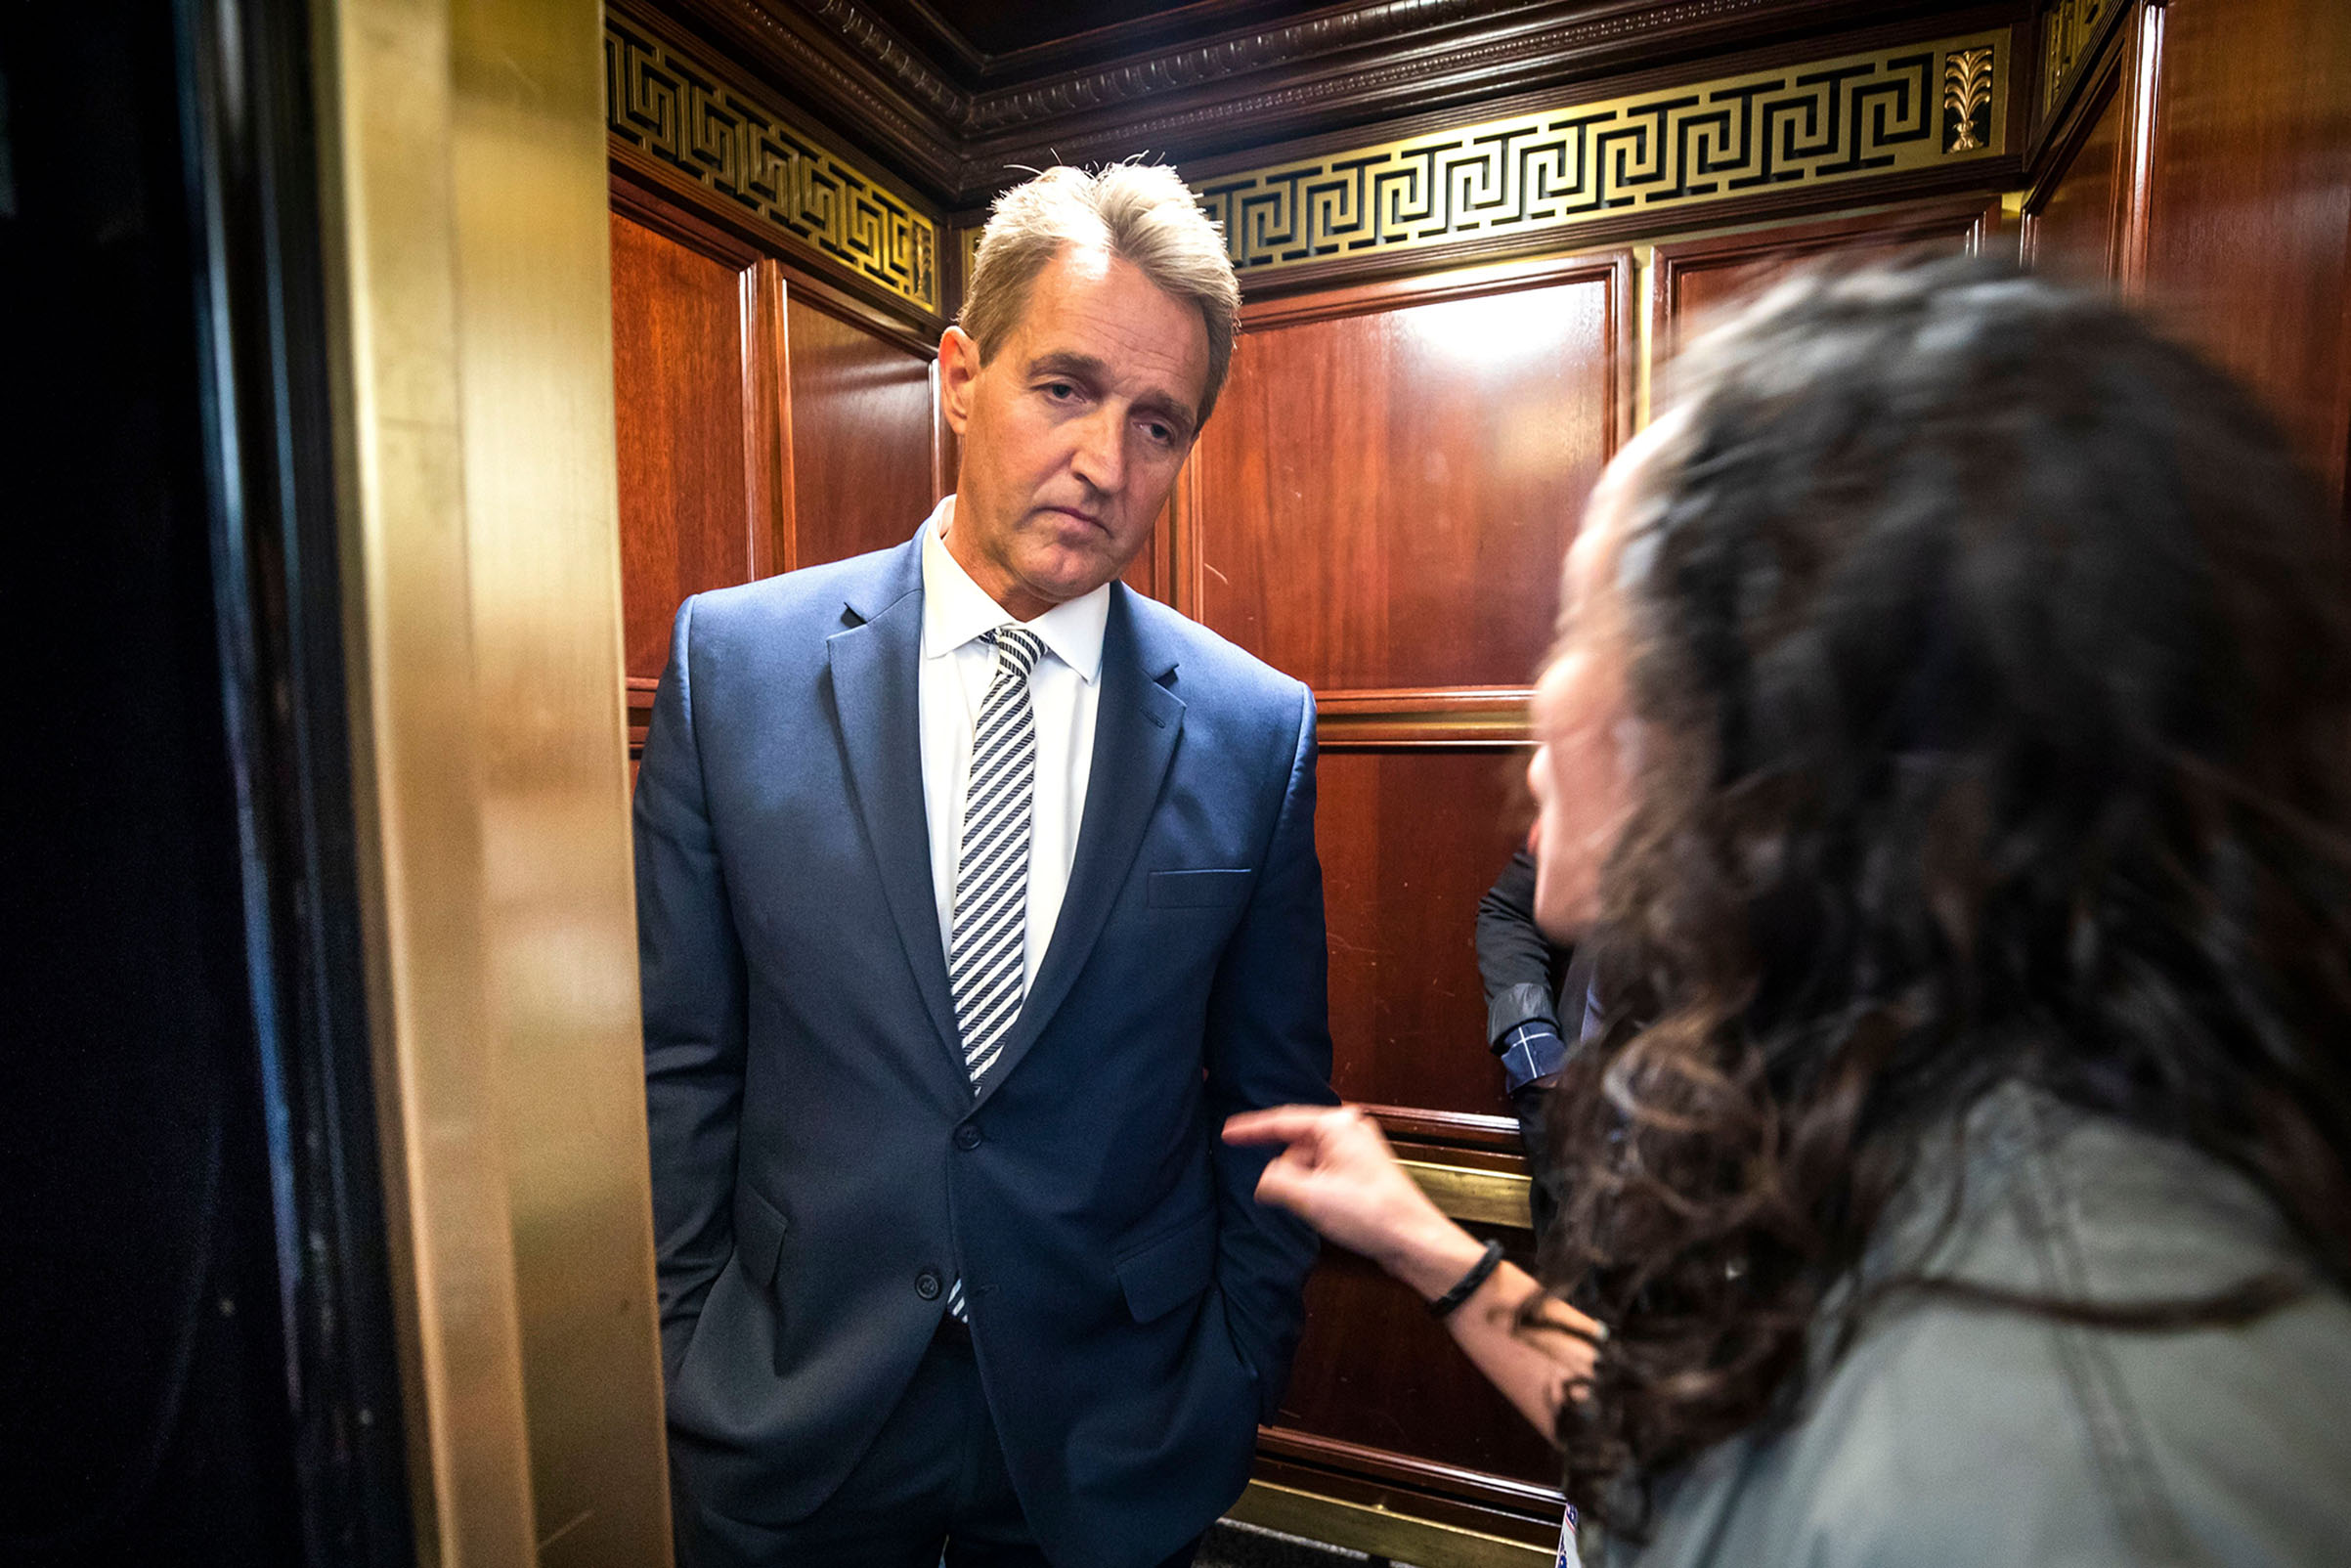 A woman who said she is a survivor of a sexual assault confronts Republican Senator from Arizona Jeff Flake in an elevator after Flake announced that he vote to confirm Supreme Court nominee Brett Kavanaugh on Sept. 28, 2018.